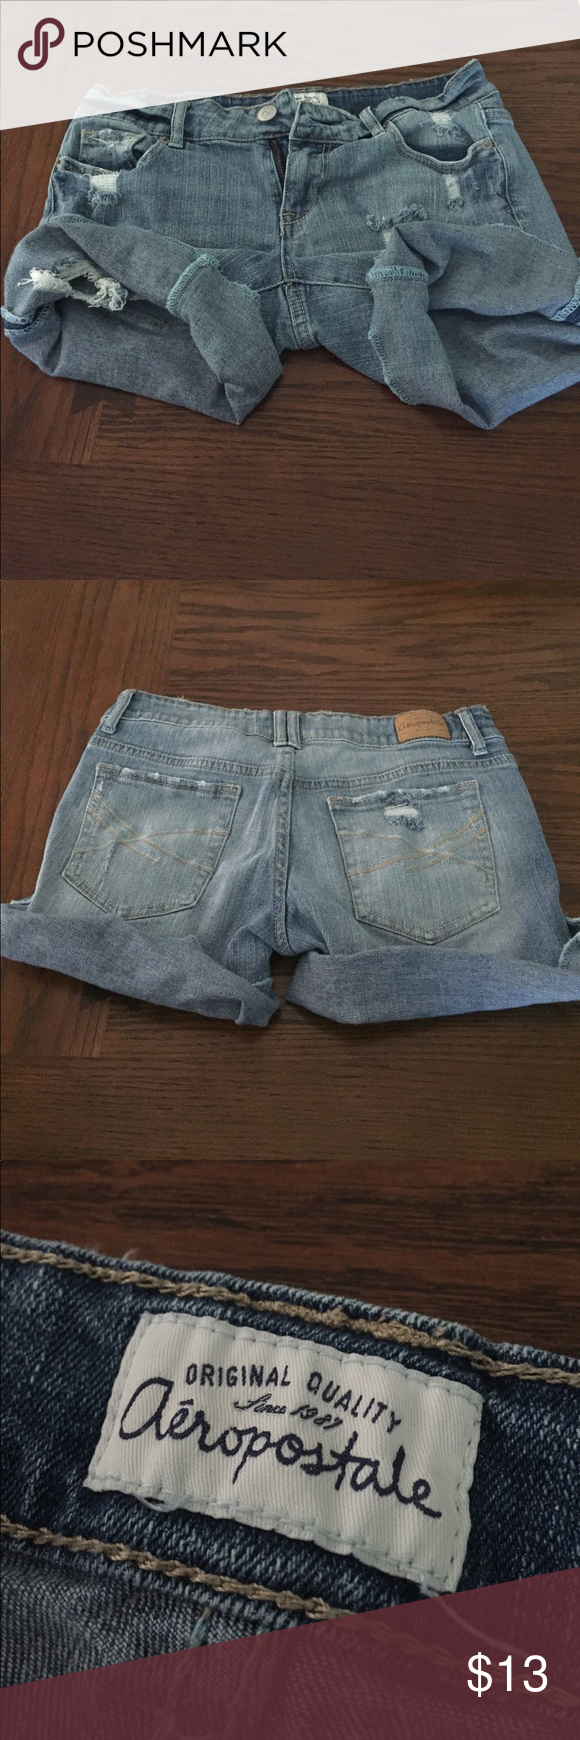 Aeropostale jean shorts. Size 3/4 Jean shorts size 3/4. Normal wear. Light wash. Aeropostale Shorts Jean Shorts